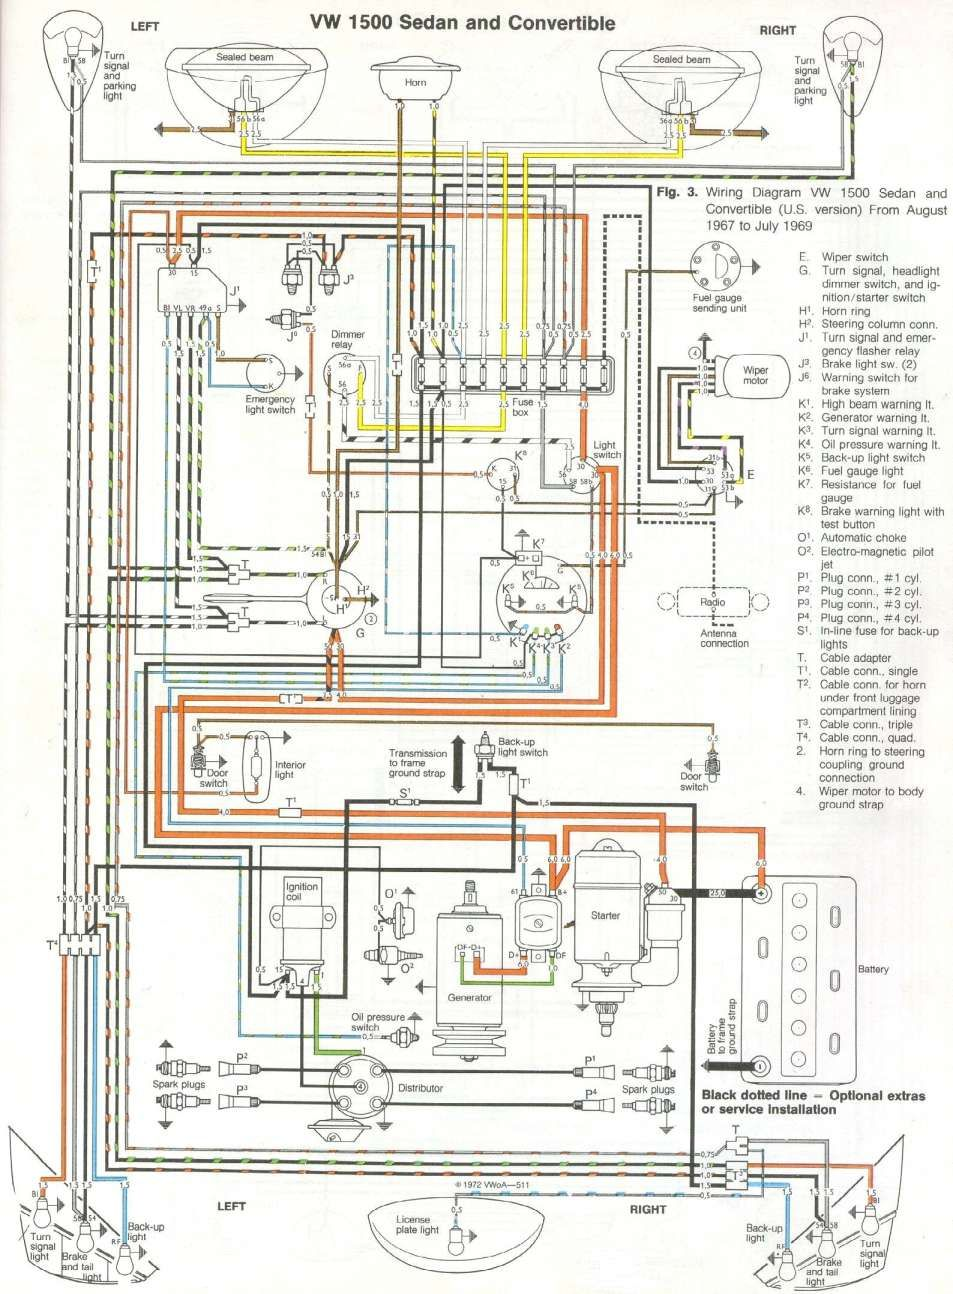 1972 vw engine diagram - wiring diagrams button just-snow -  just-snow.lamorciola.it  just-snow.lamorciola.it